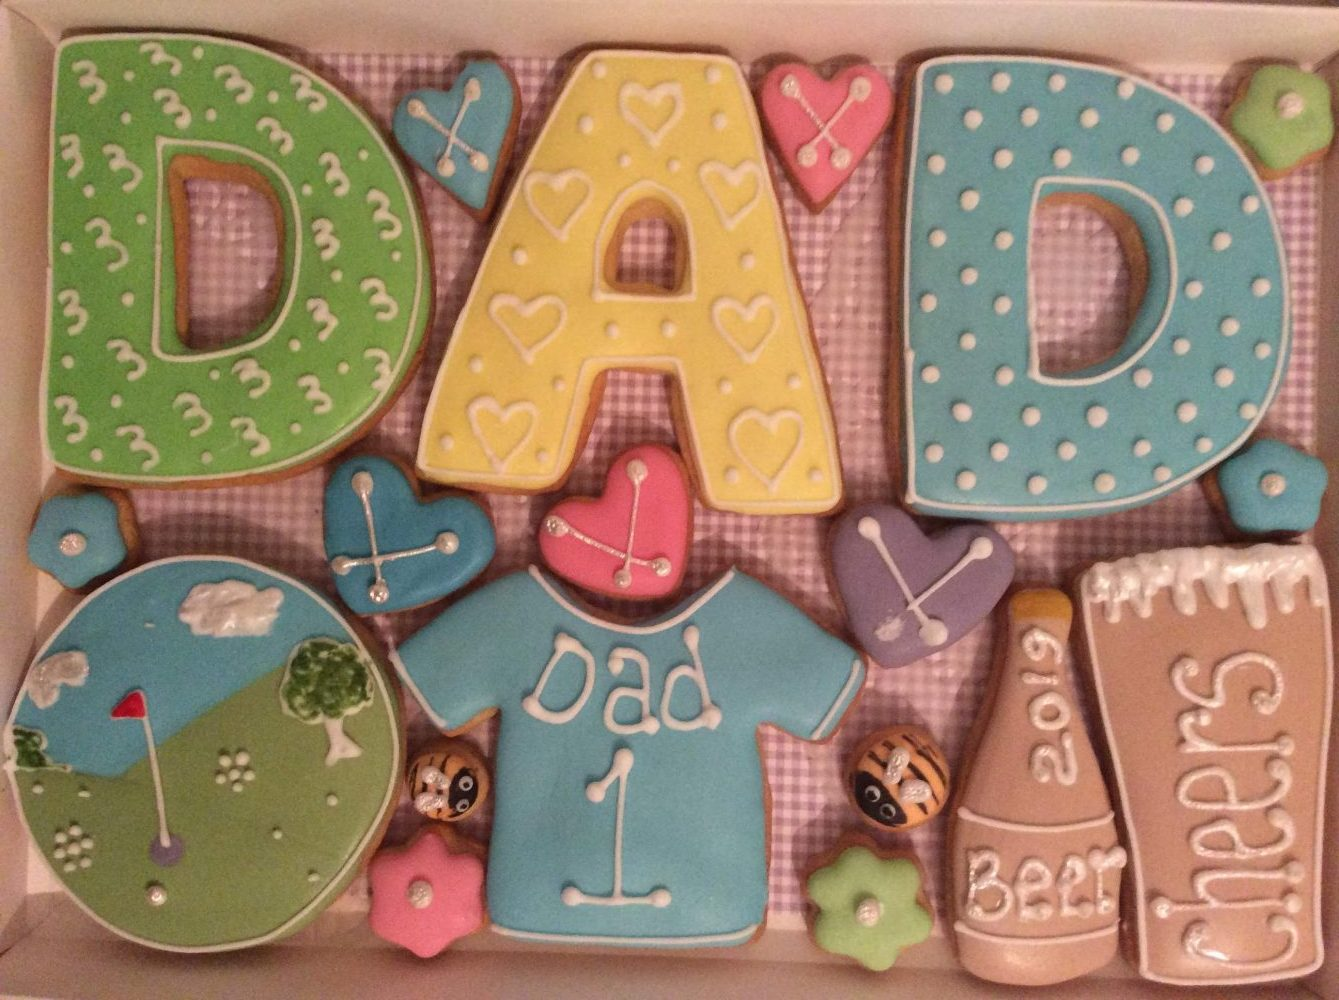 Dad Cookie Box (Large)